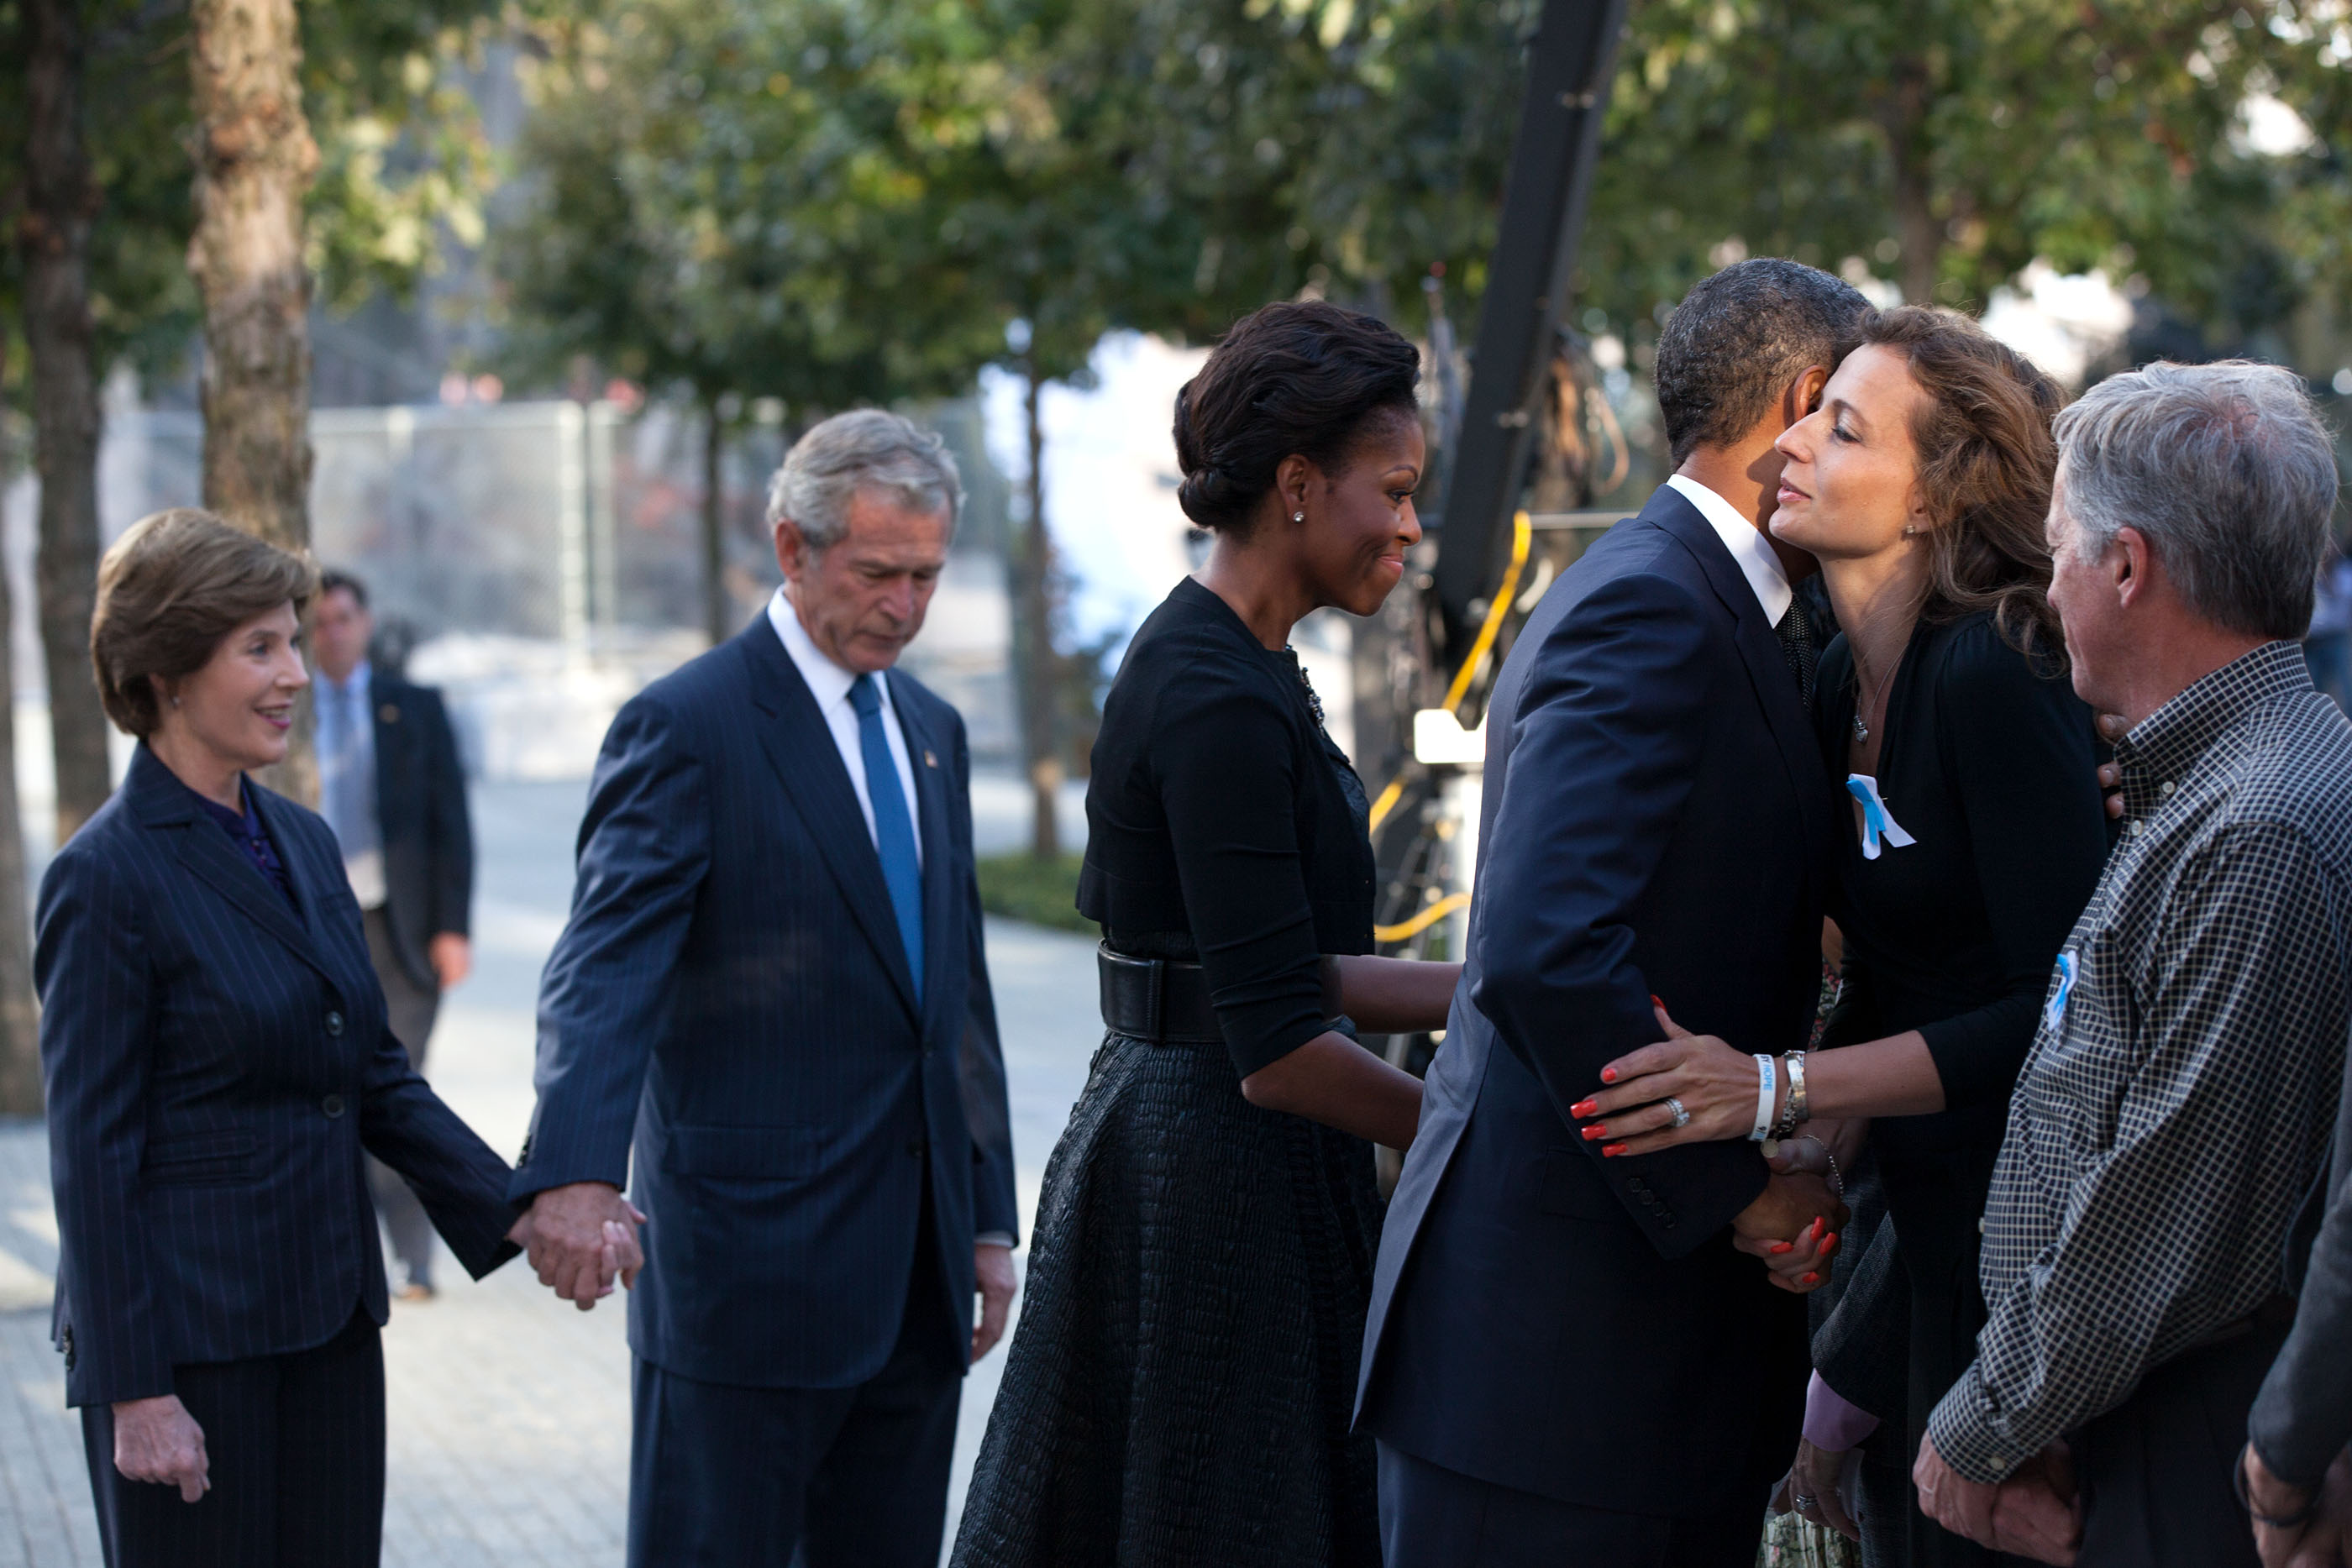 New York, Sept. 11, 2011. Greeting families, with former President and Mrs. Bush, prior to a commemoration ceremony on the tenth anniversary of the 9/11 terrorist attacksPresident and Mrs. Obama. (Official White House Photo by Pete Souza)